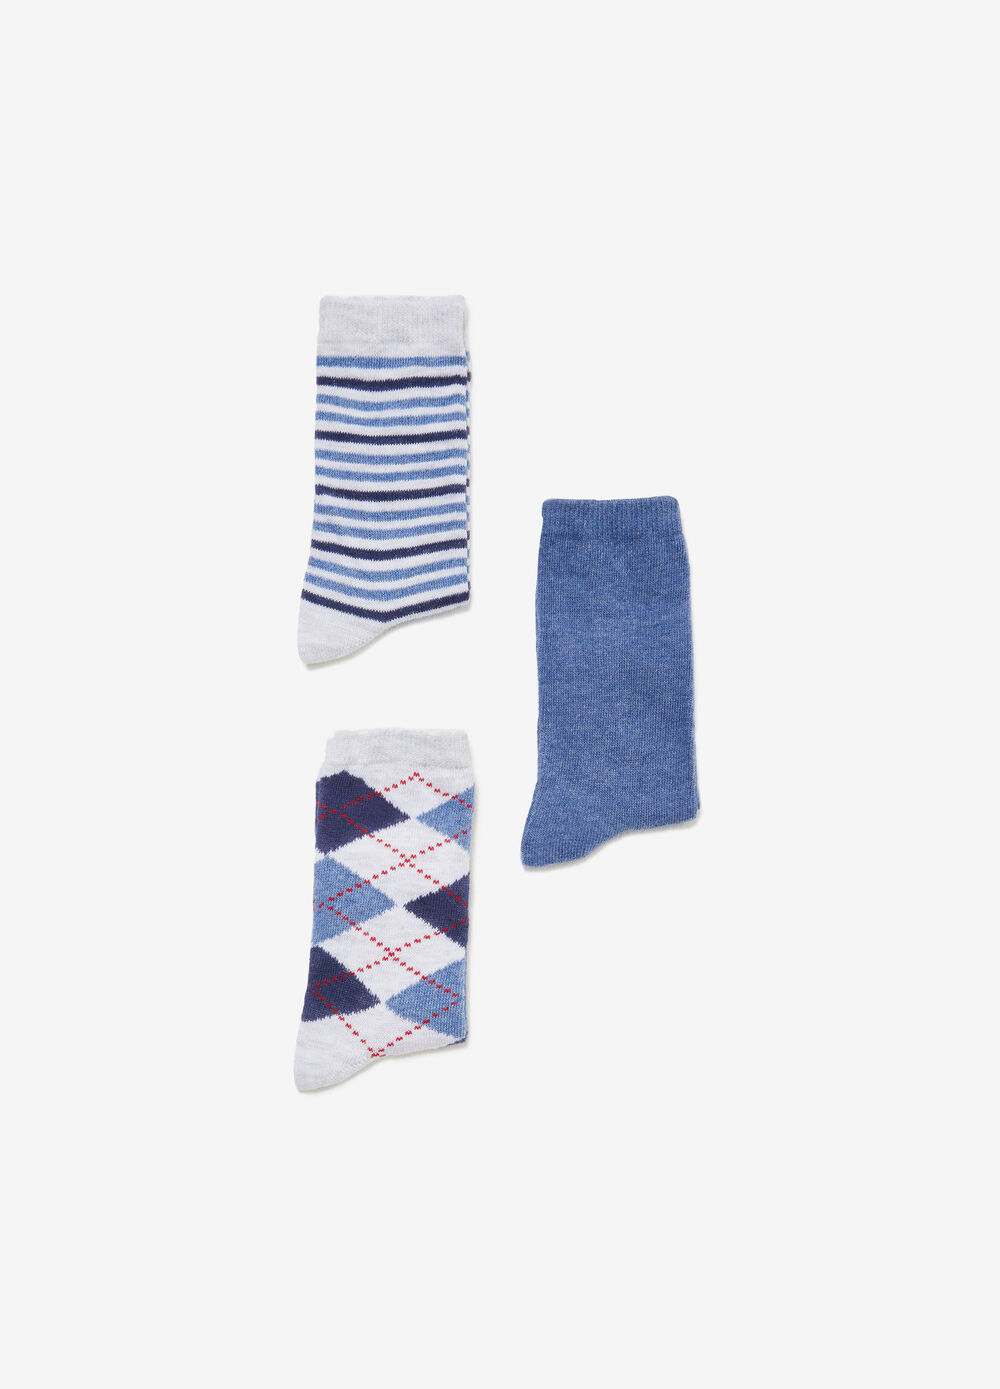 Three-pair pack solid colour and patterned socks